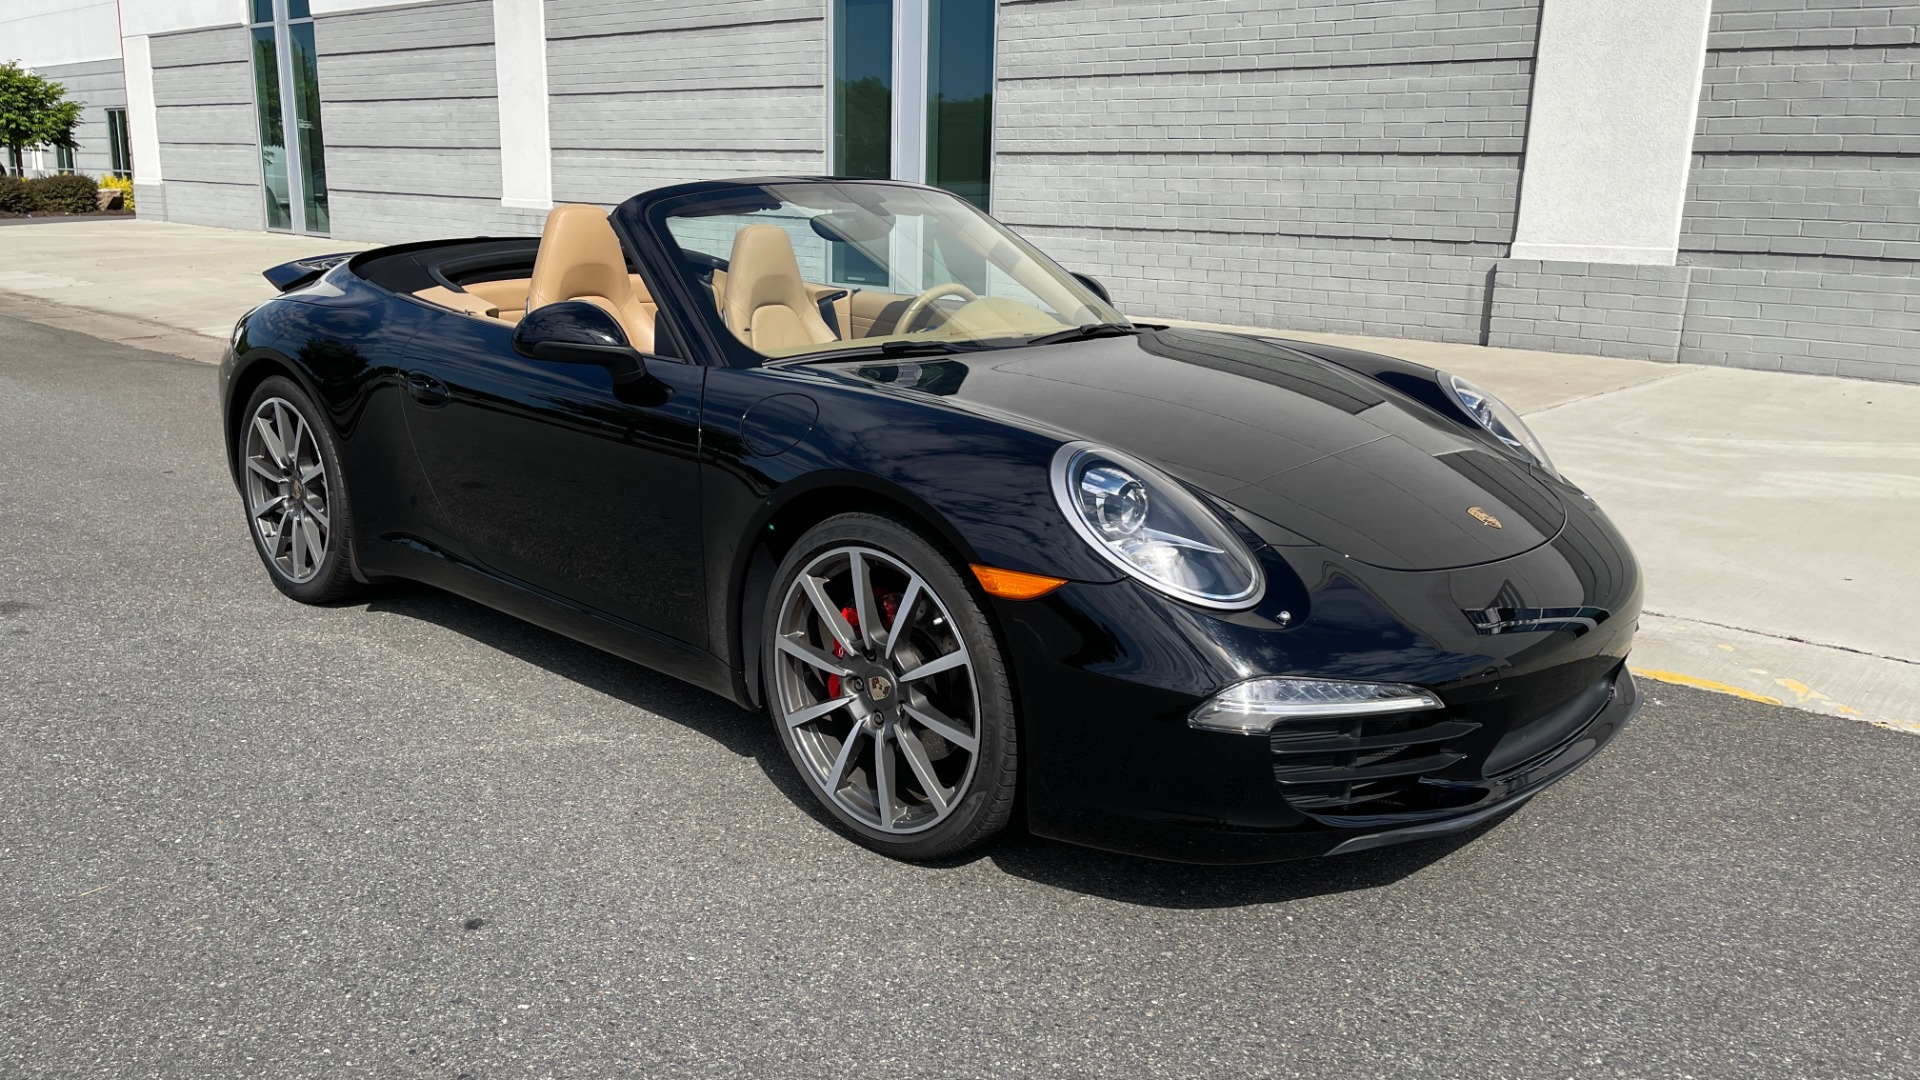 Used 2013 Porsche 911 CARRERA CABRIOLET / PDK / NAV / BOSE / HTD STS / PDLS for sale Sold at Formula Imports in Charlotte NC 28227 2